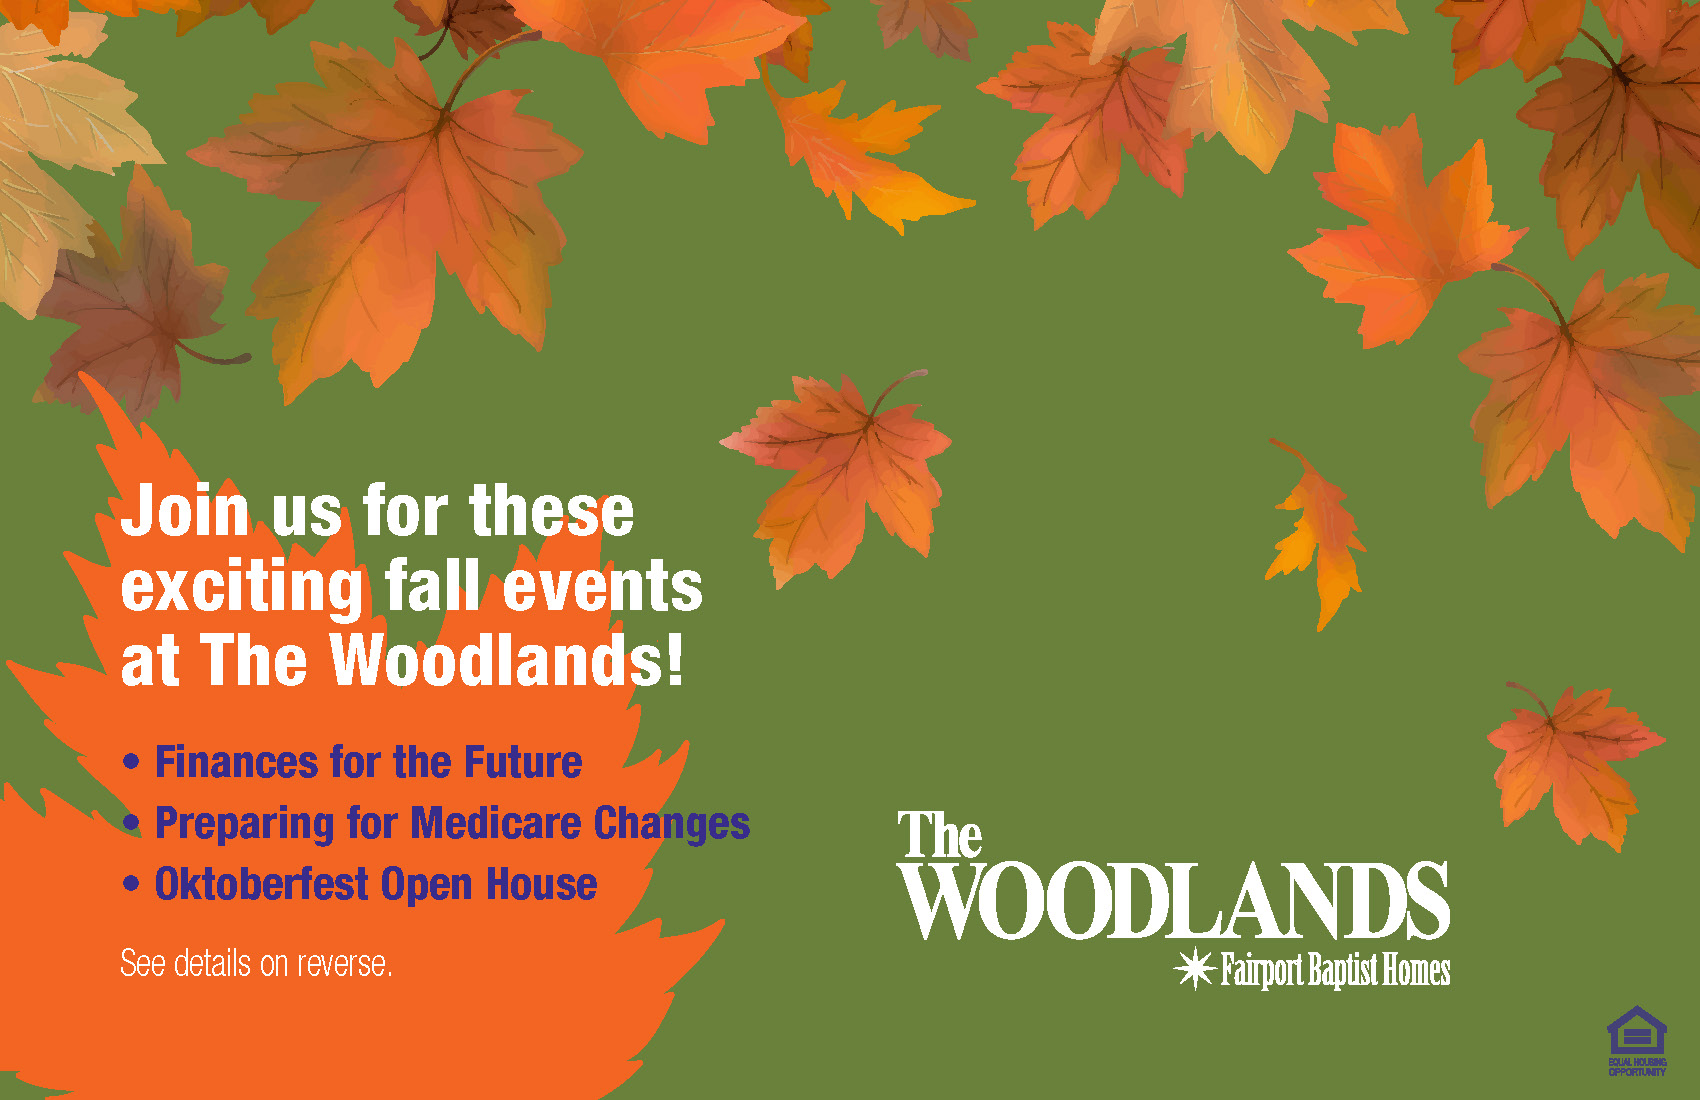 Join us for these exciting fall events at The Woodlands!